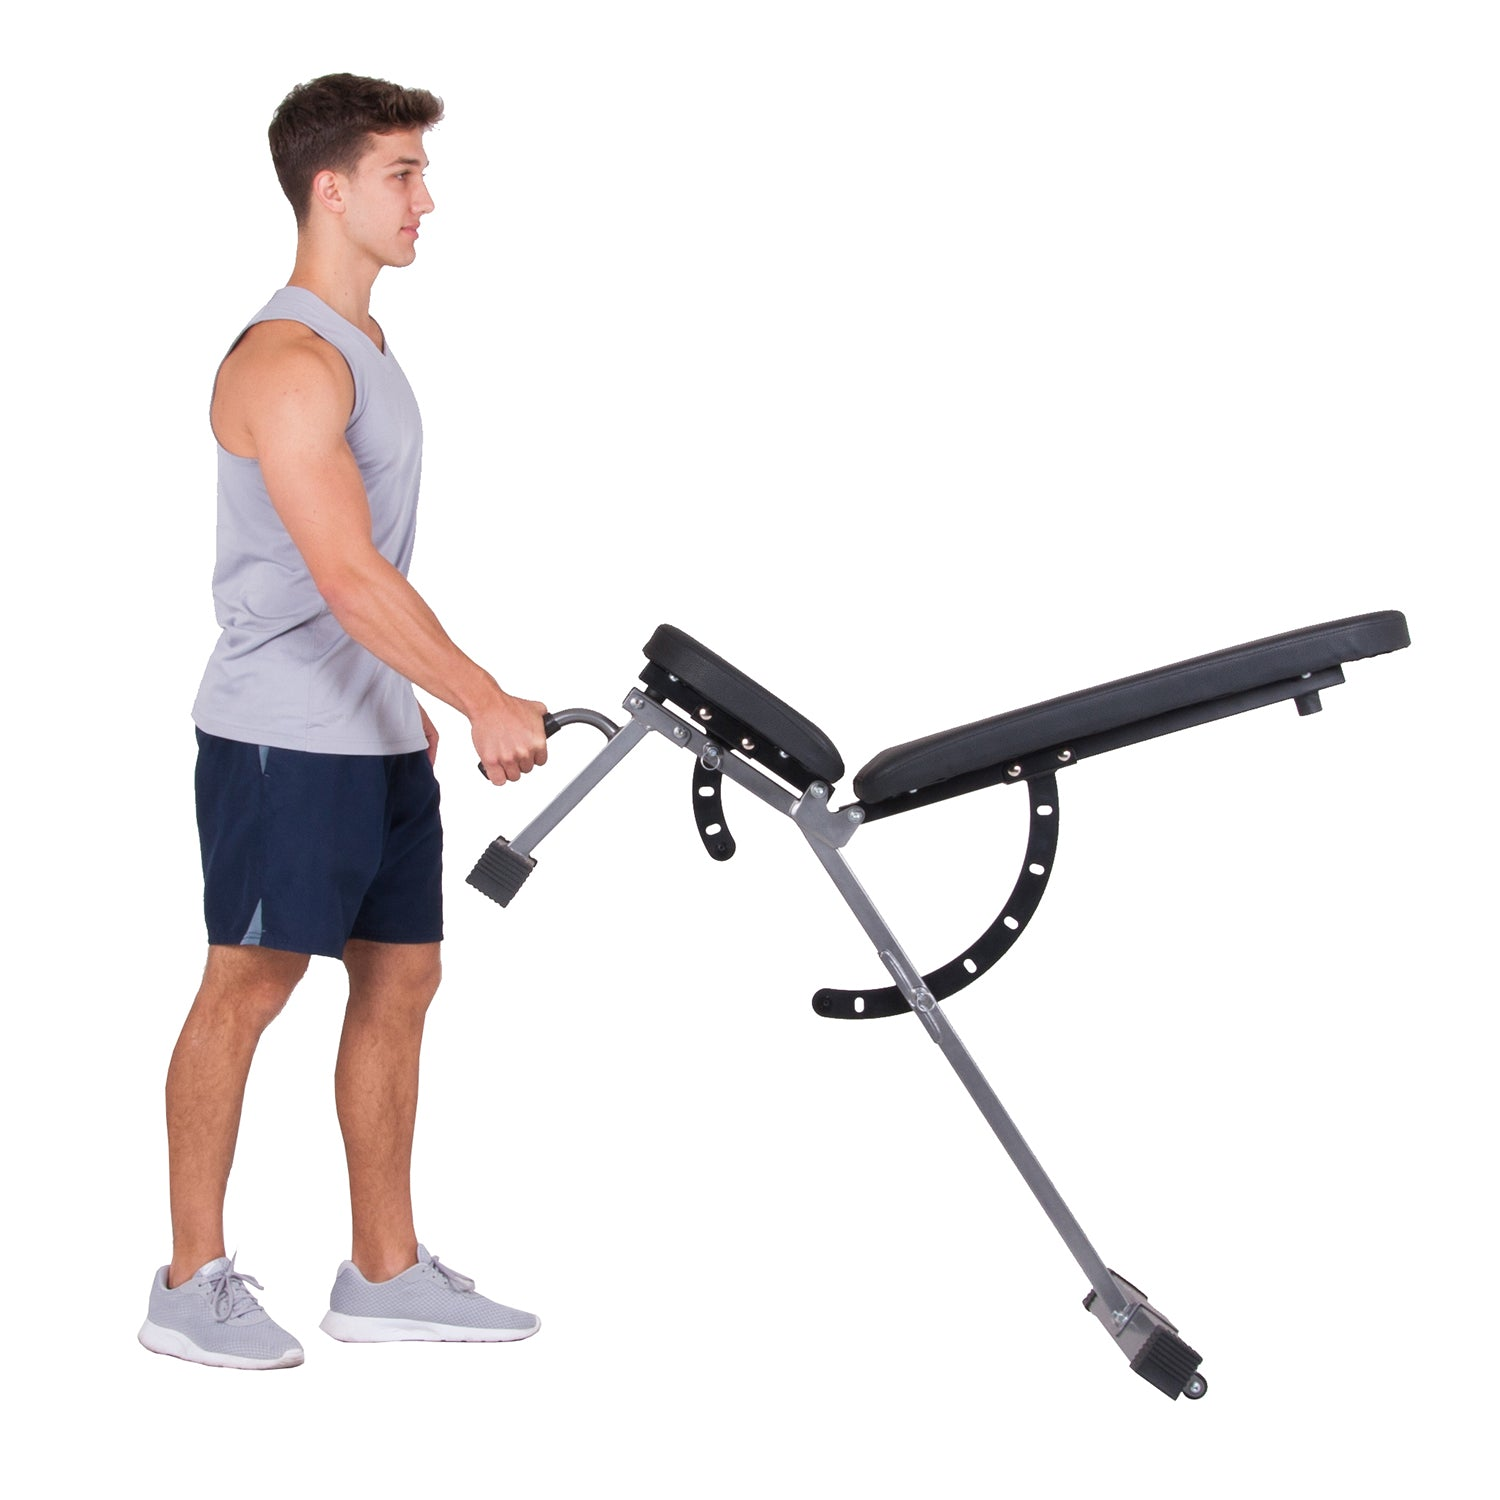 Body Power BUB350 Multi-Purpose Adjustable Fitness Weight Bench - body flex sports